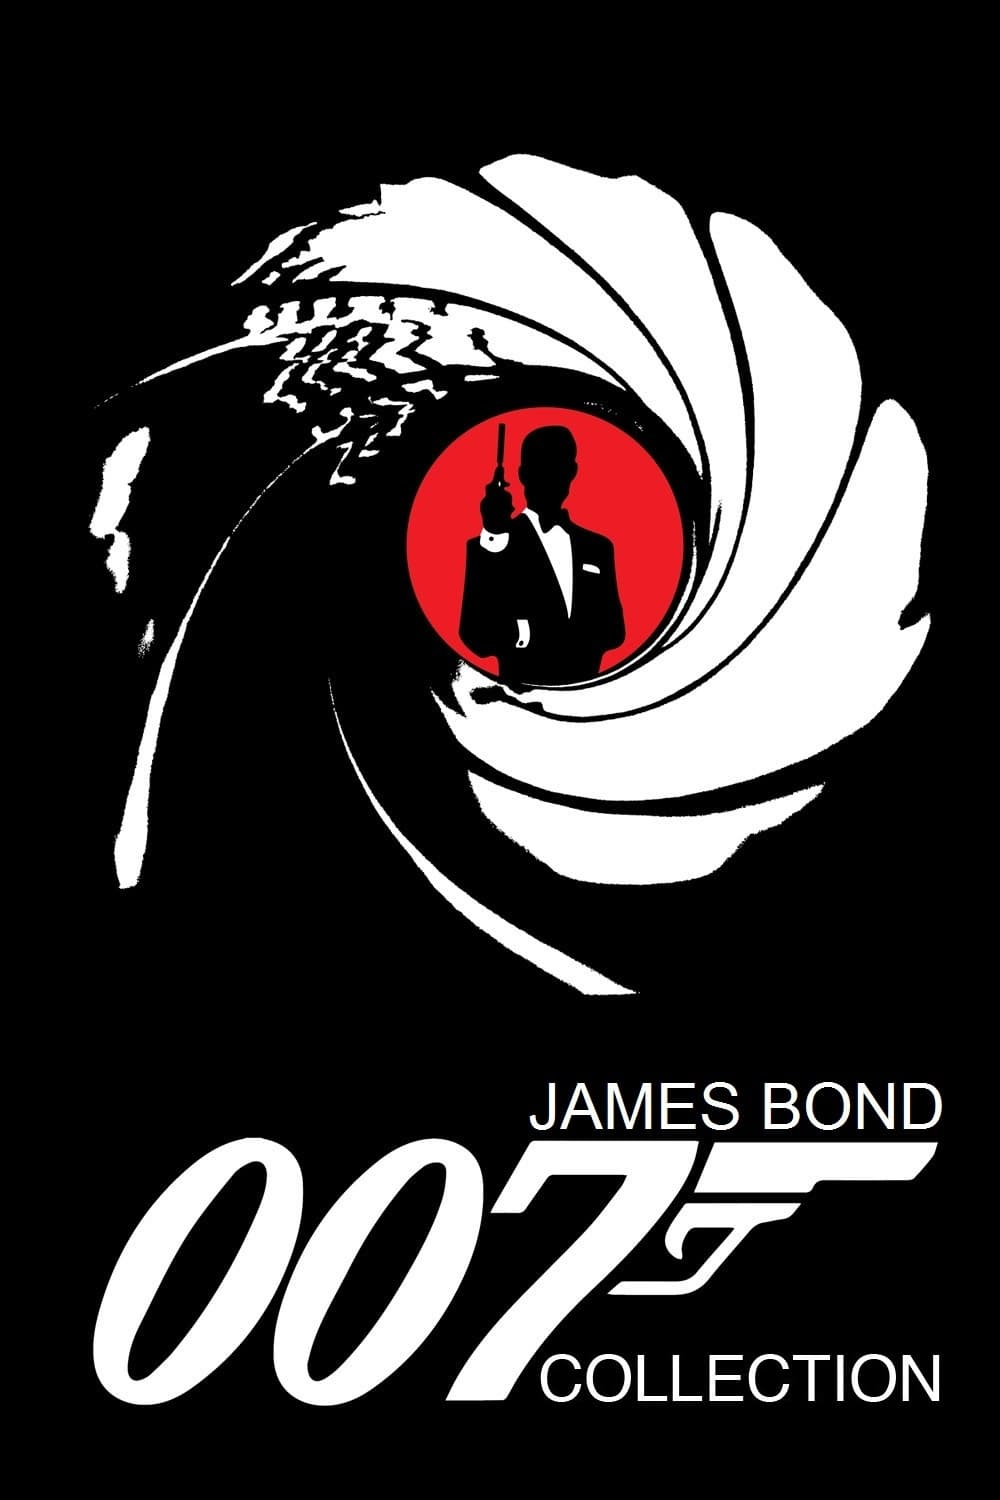 James Bond 007 Collection • FUNXD.site